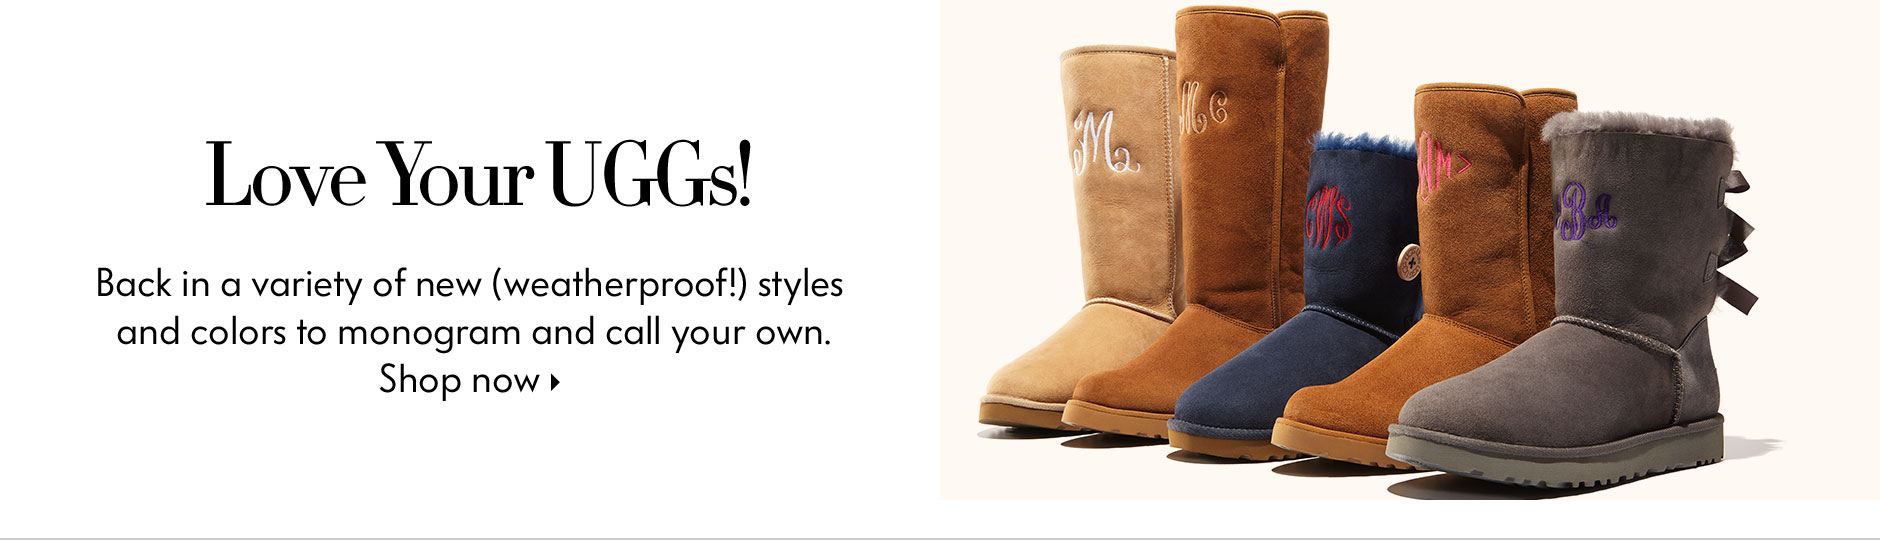 Love Your UGGs! - Back in a variety of new (weatherproof!) styles and colors to monogram and call your own.